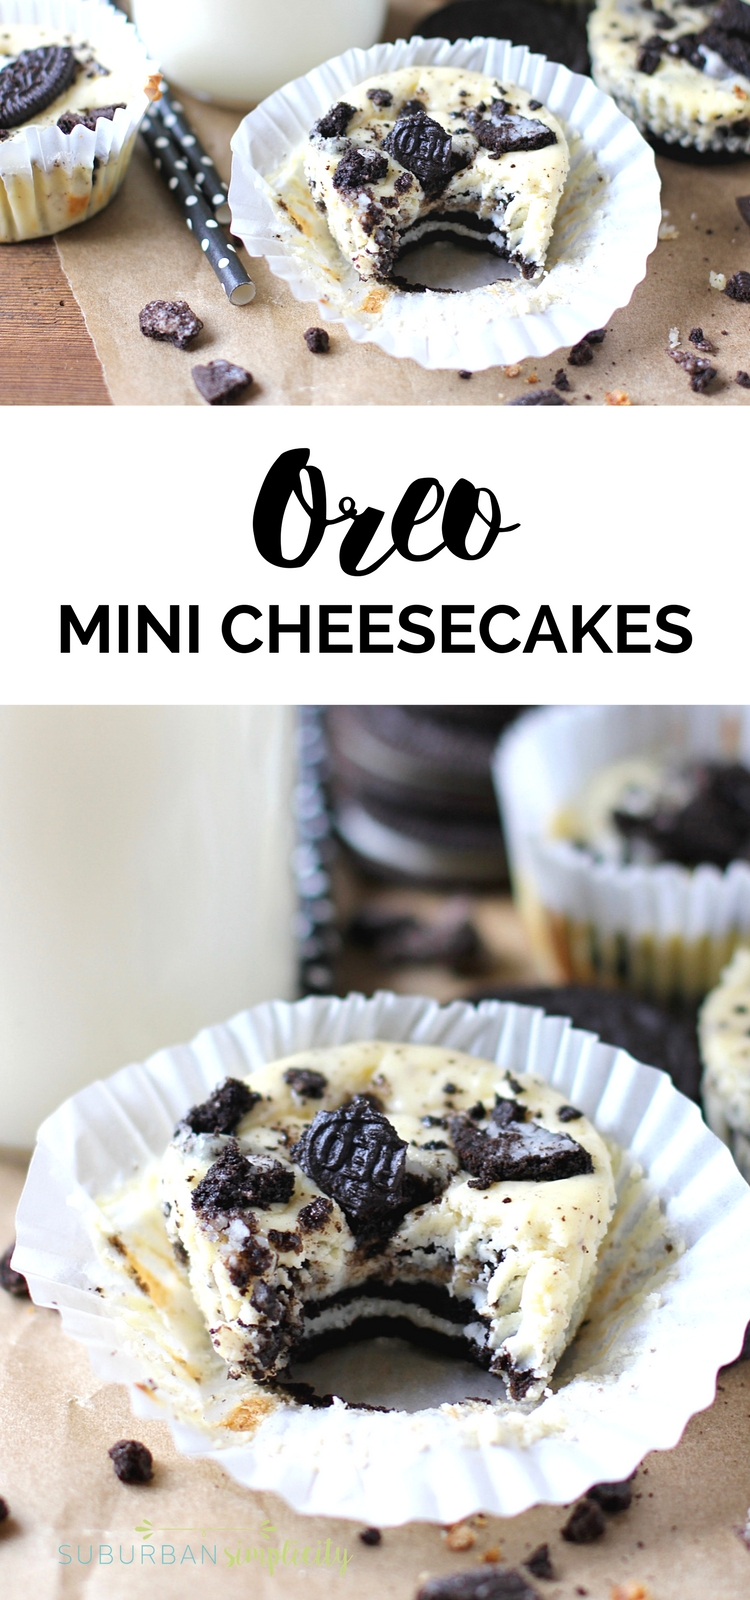 Oreo Mini Cheesecakes are a delicious bite-sized dessert with creamy cheesecake and an amazing Oreo cookie crust. This 5-ingredient Oreo treat idea is easy and perfect for just about any occasion!